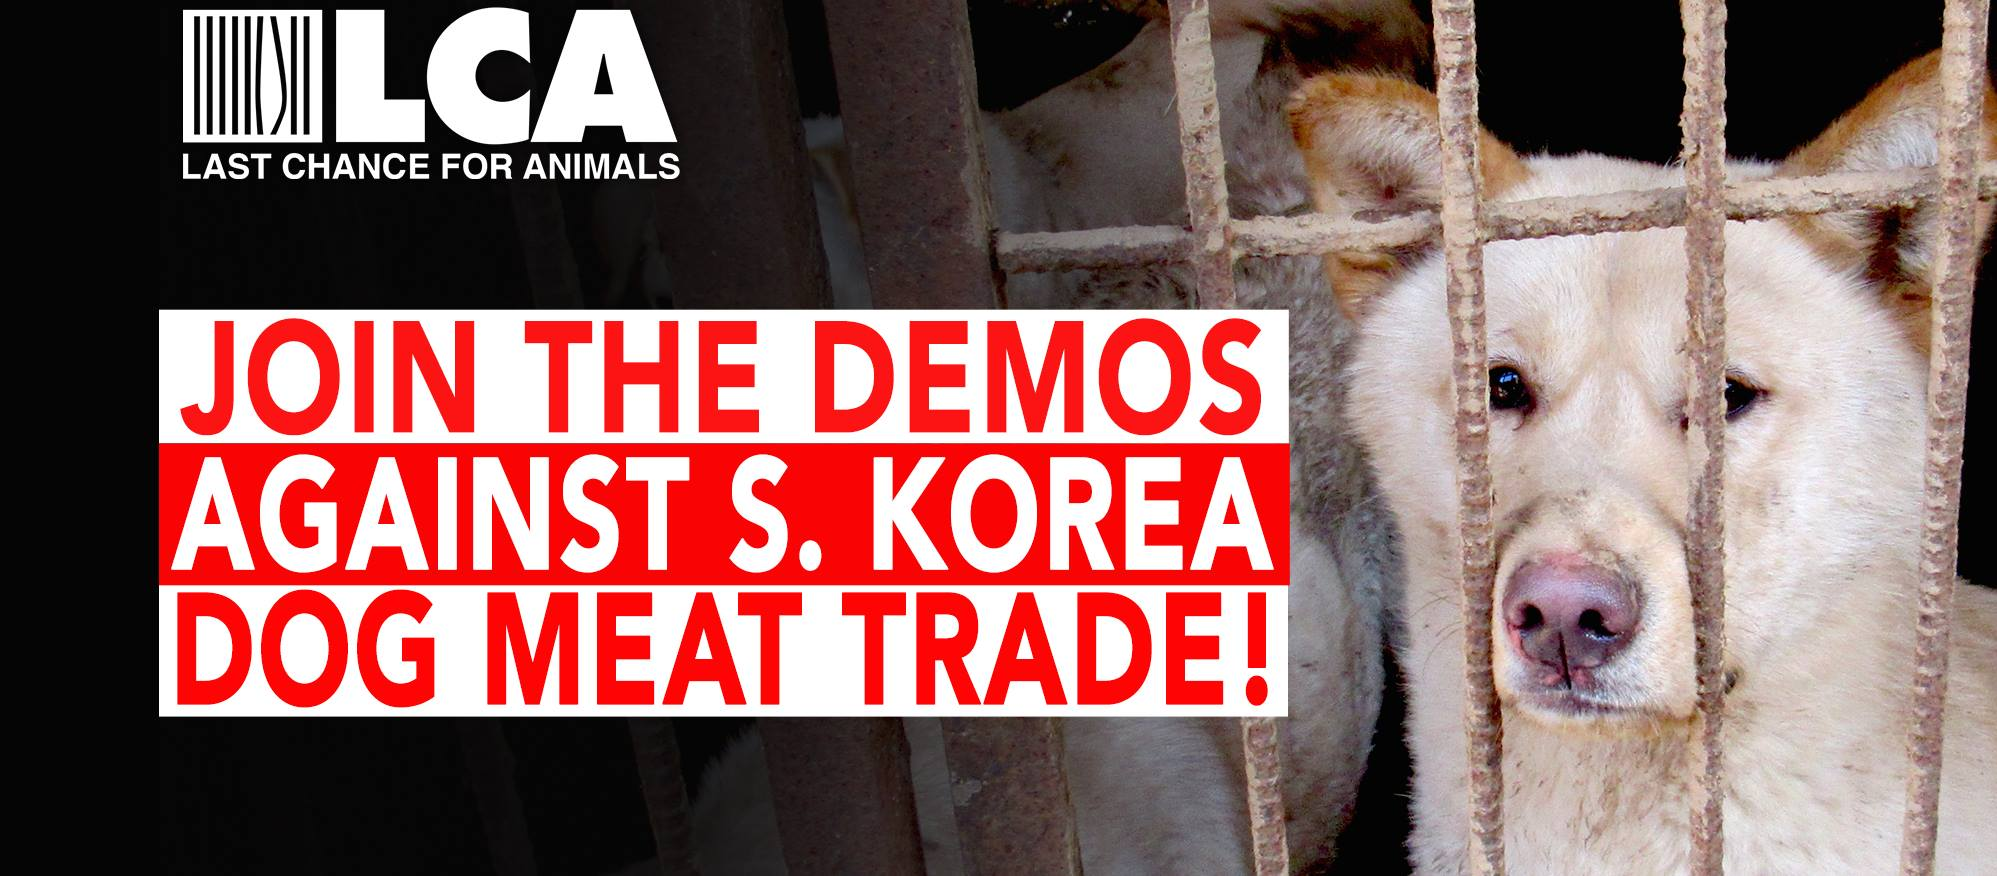 Join the Two-Day Demo Against the South Korean Dog Meat Trade